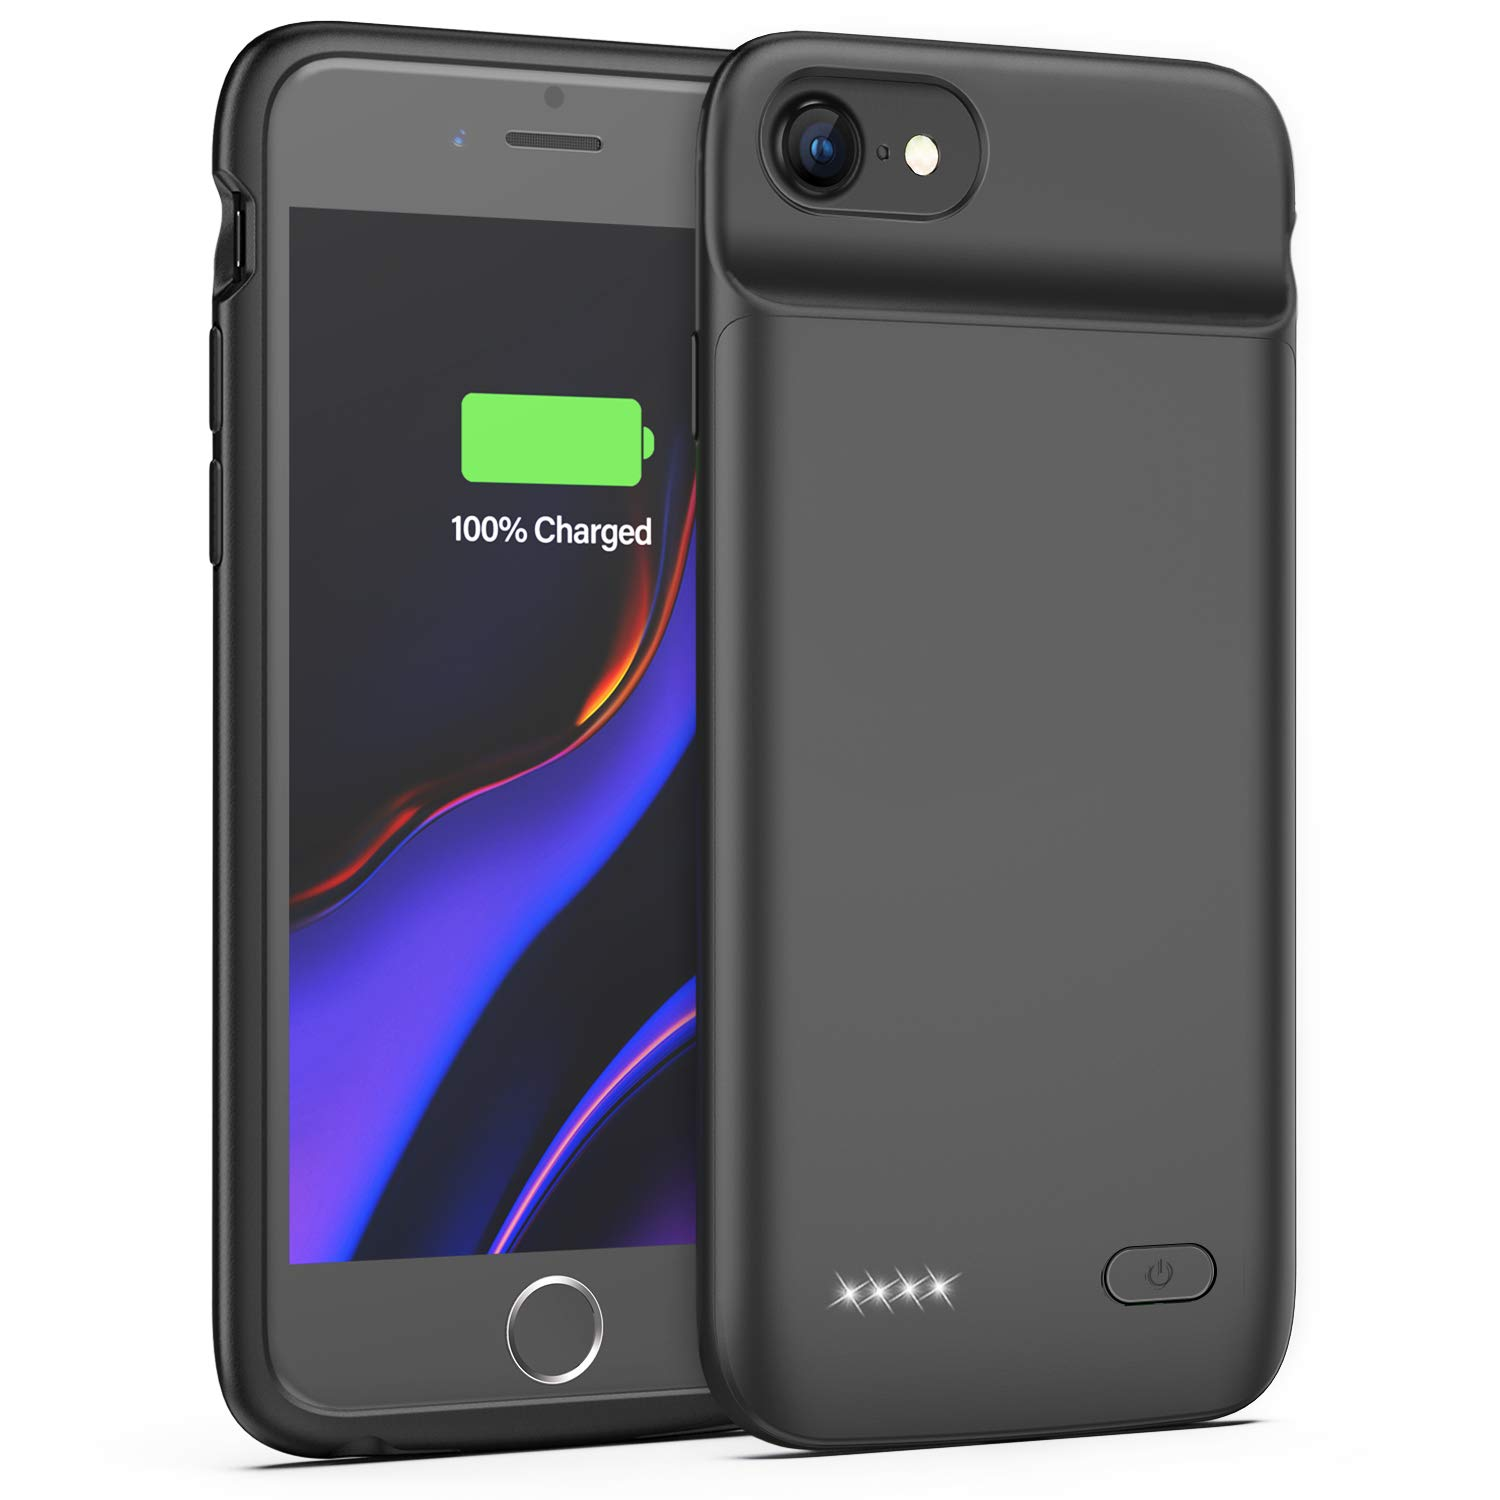 Lonlif Battery Case for iPhone 7/8, 3200mAh Portable Charging Case Protective Slim Extended Battery Pack Charger Case (Black) by Lonlif